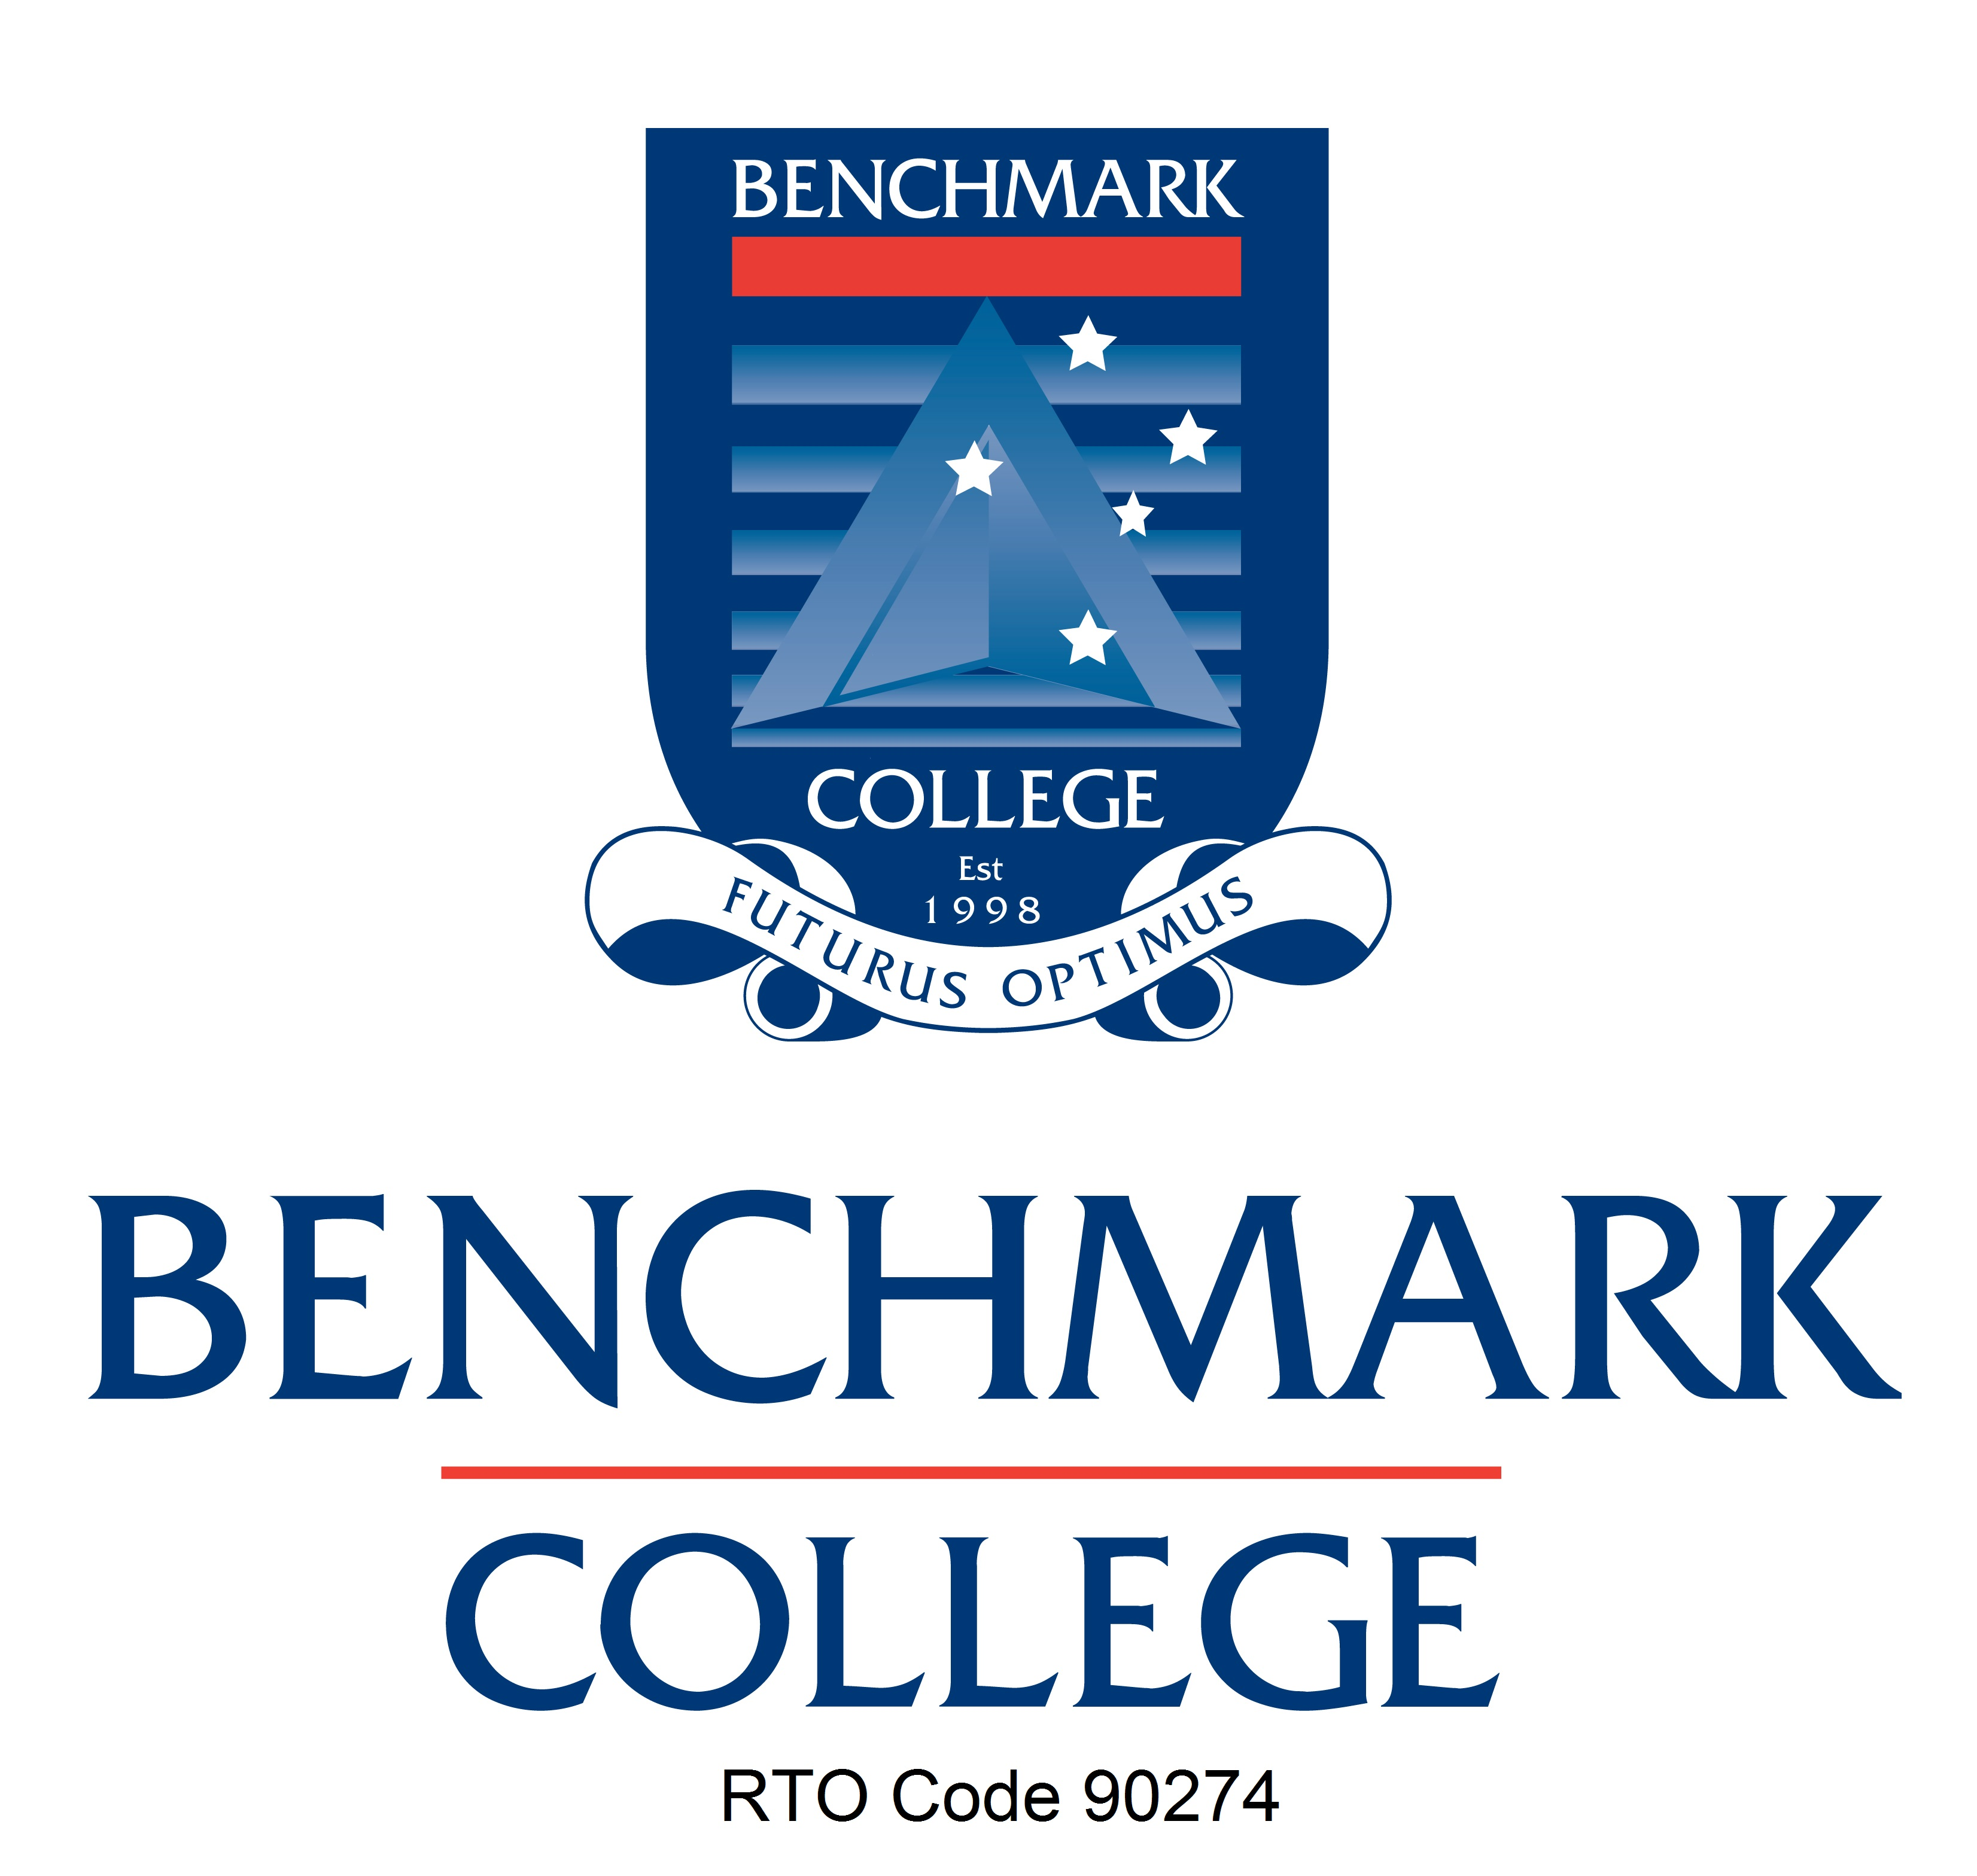 Benchmark College